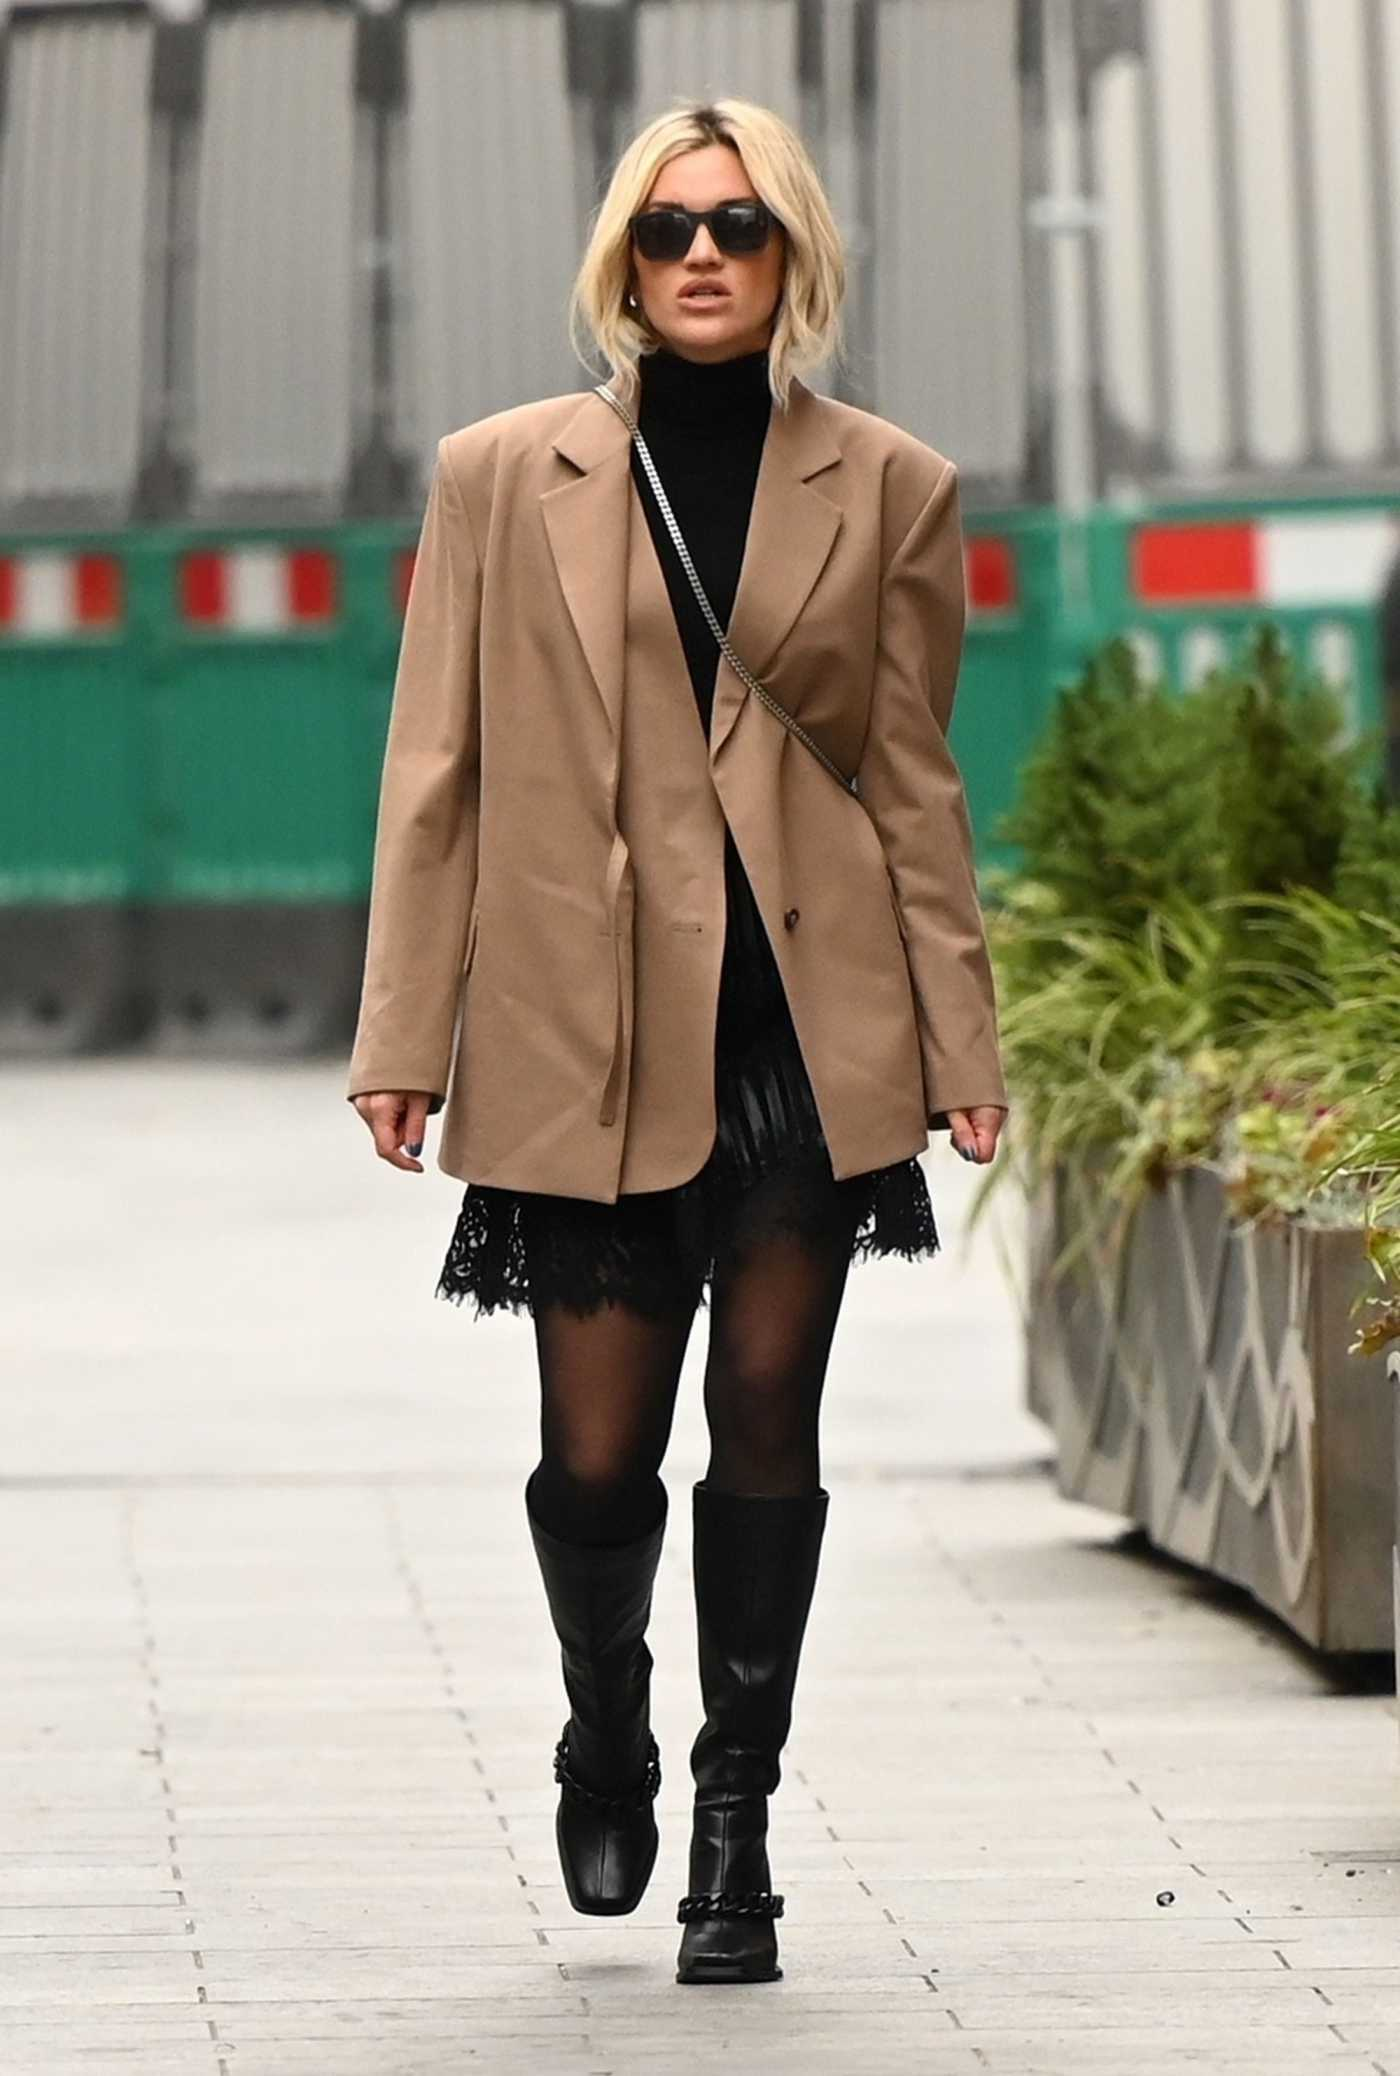 Ashley Roberts in a Beige Blazer Arrives at the Global Radio Studios in London 01/11/2021